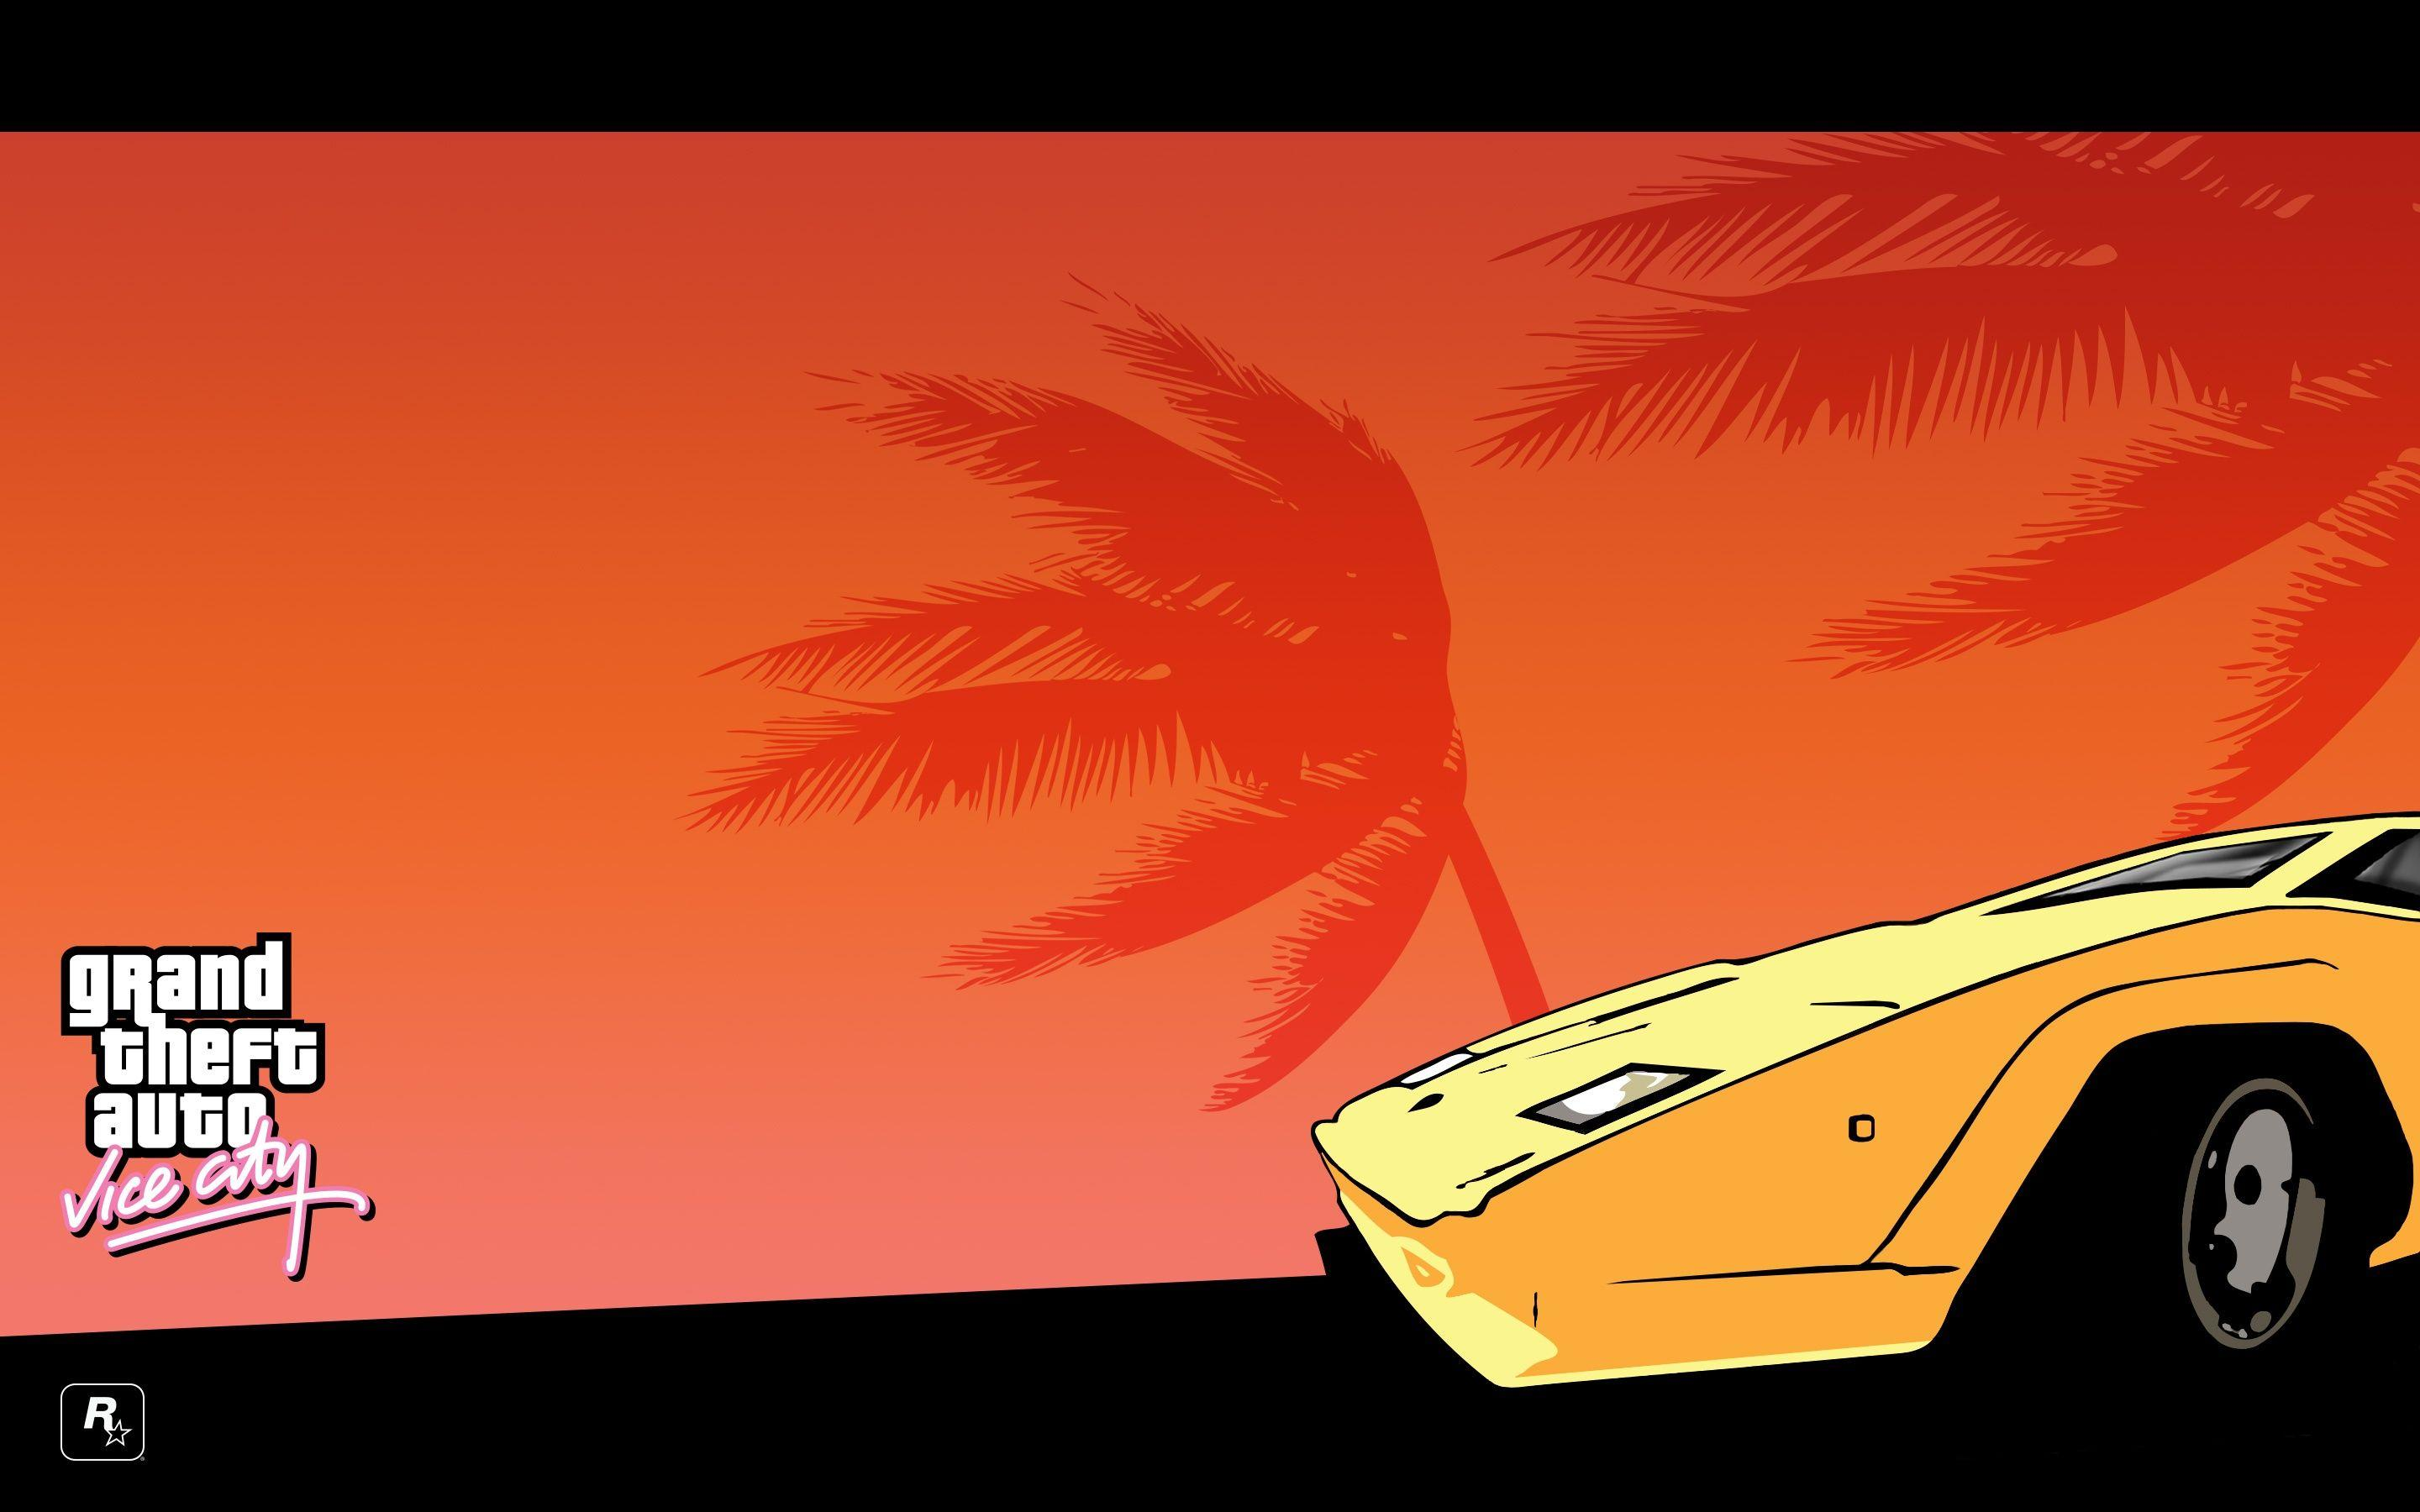 GTA Vice City Wallpapers - Wallpaper Cave